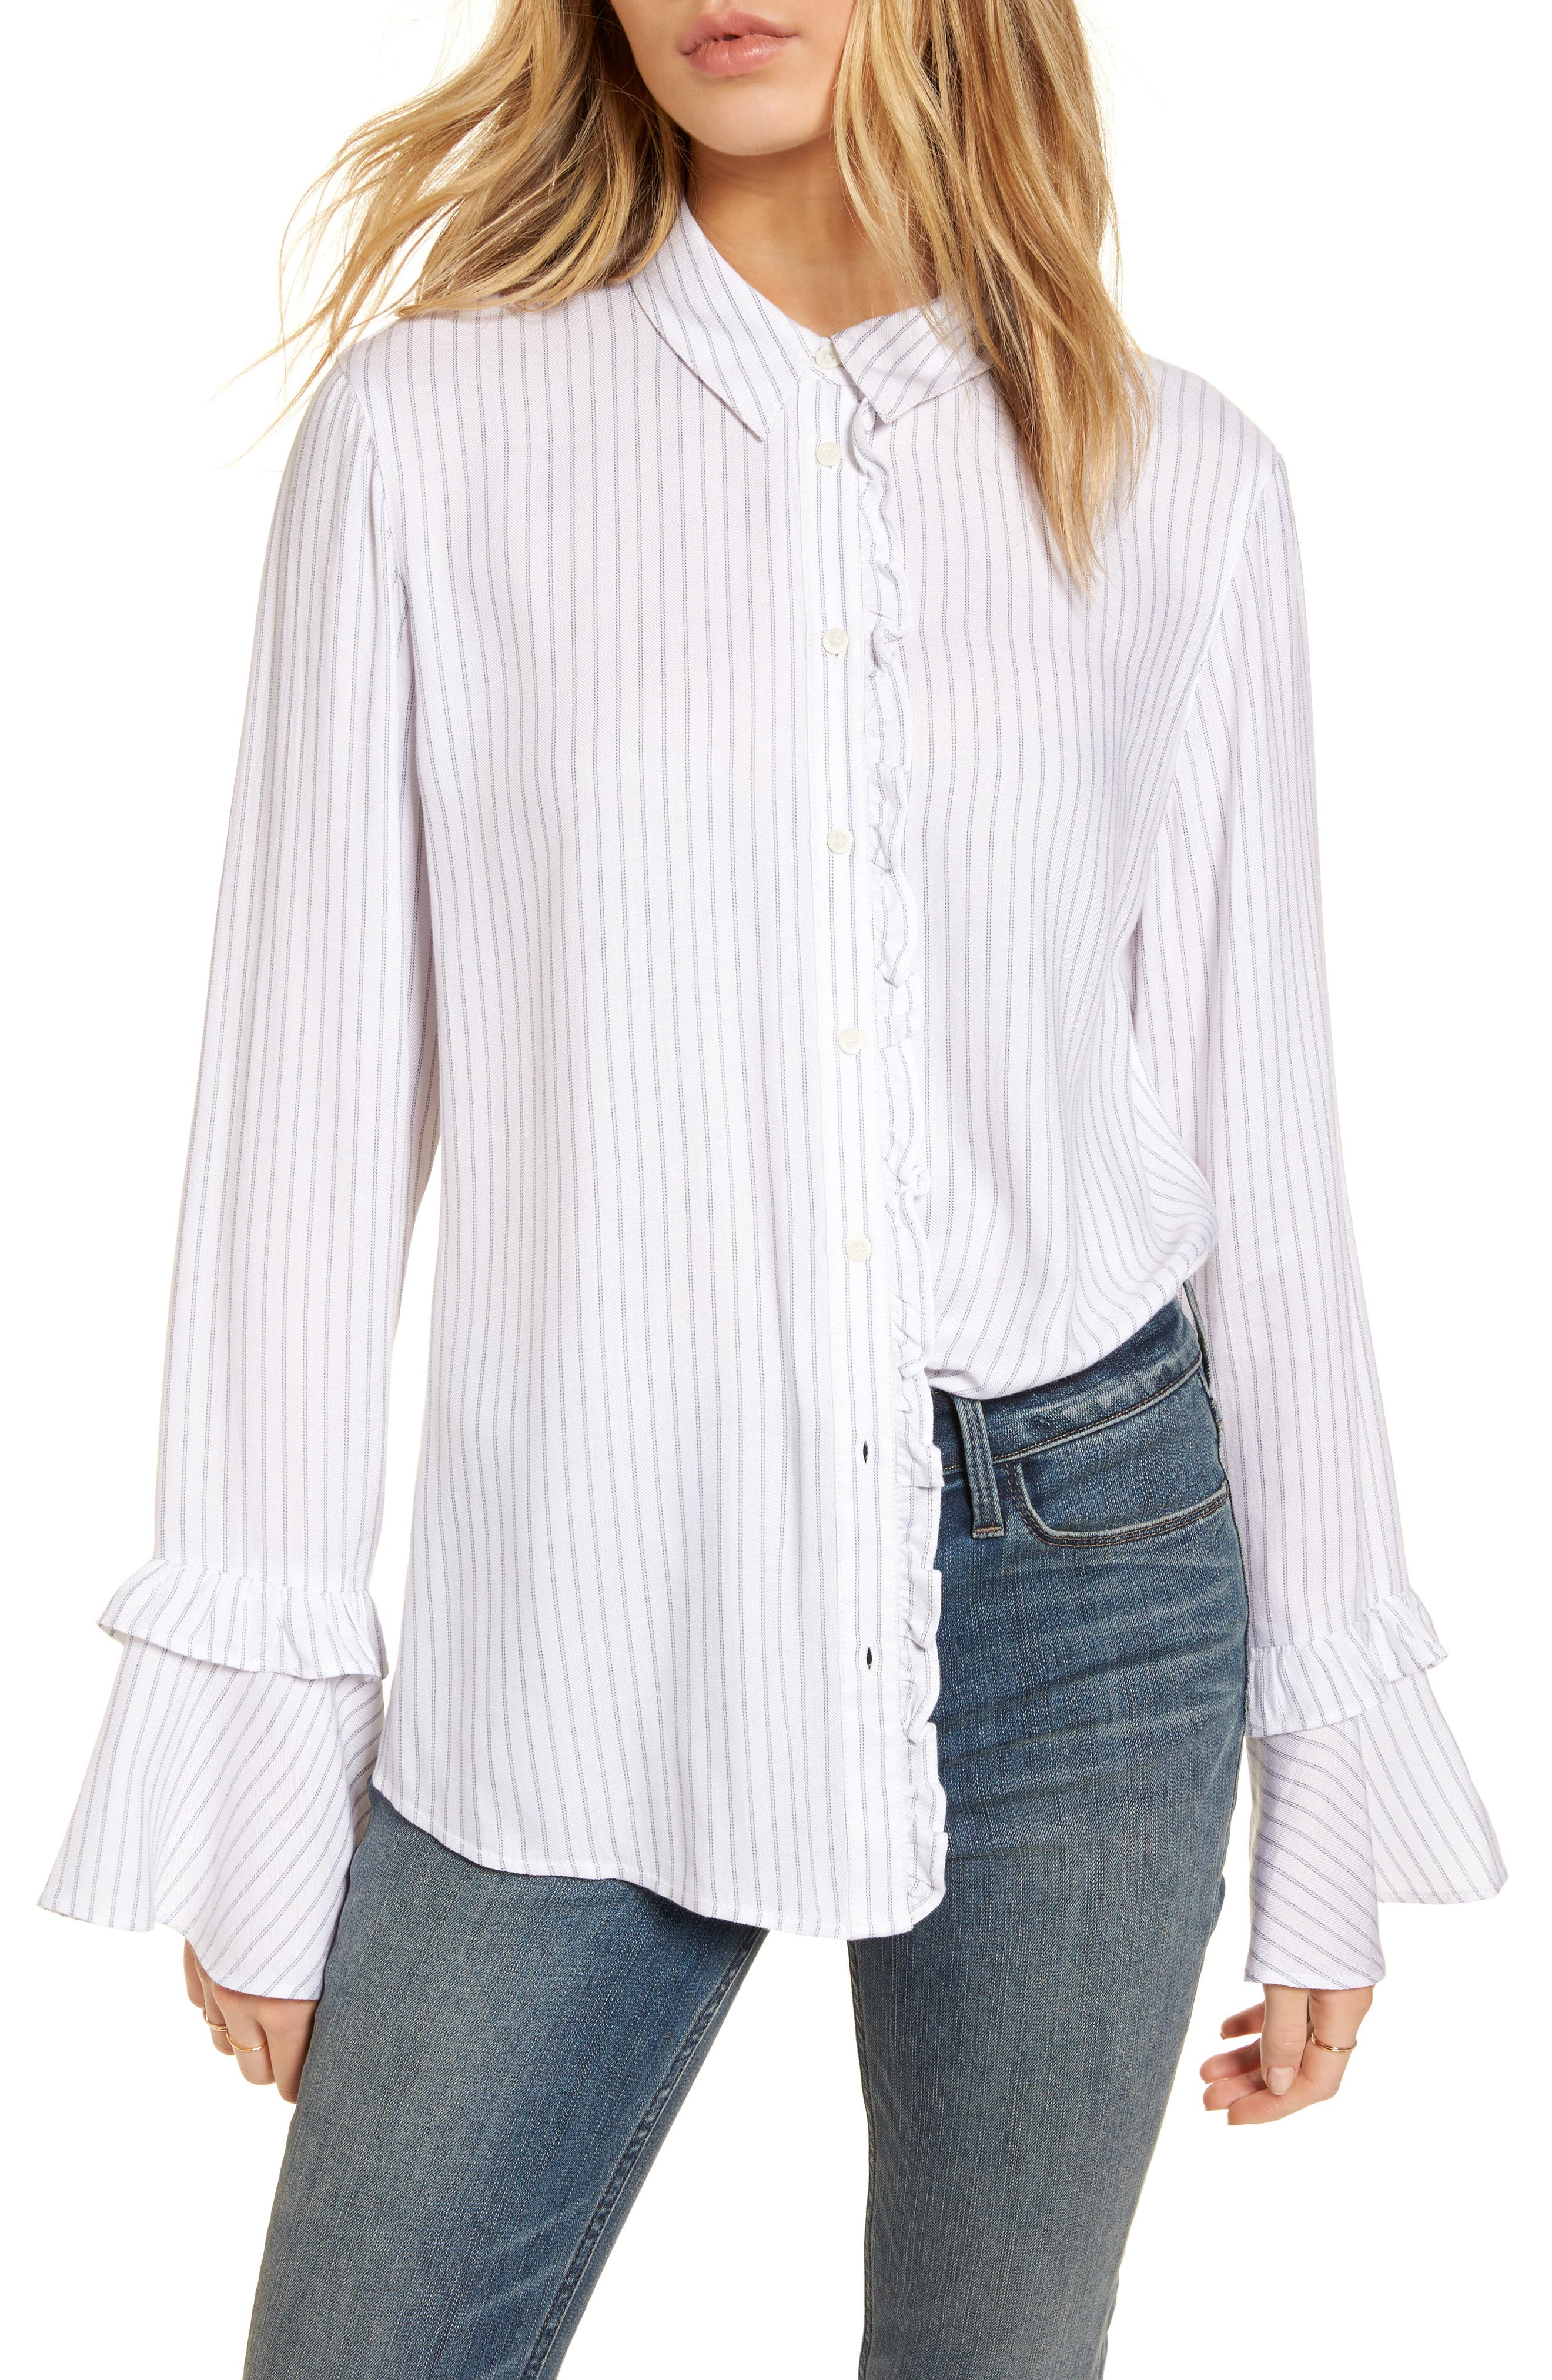 Bell Sleeve Shirt,                             Main thumbnail 1, color,                             White Double Pinstripe